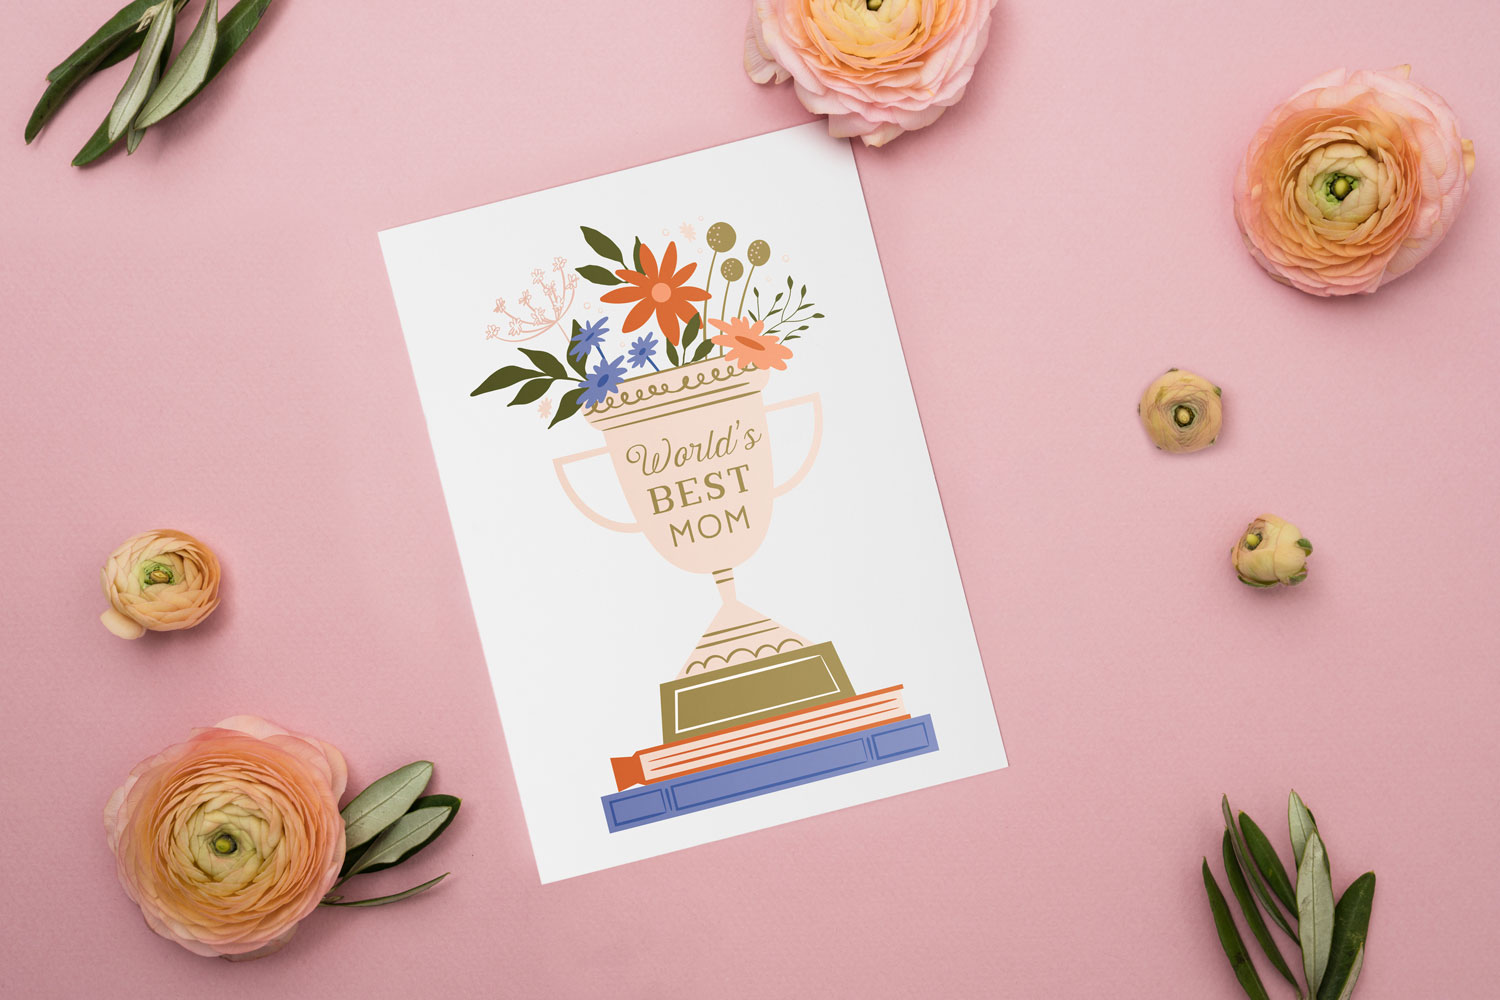 sentimental mother's day card